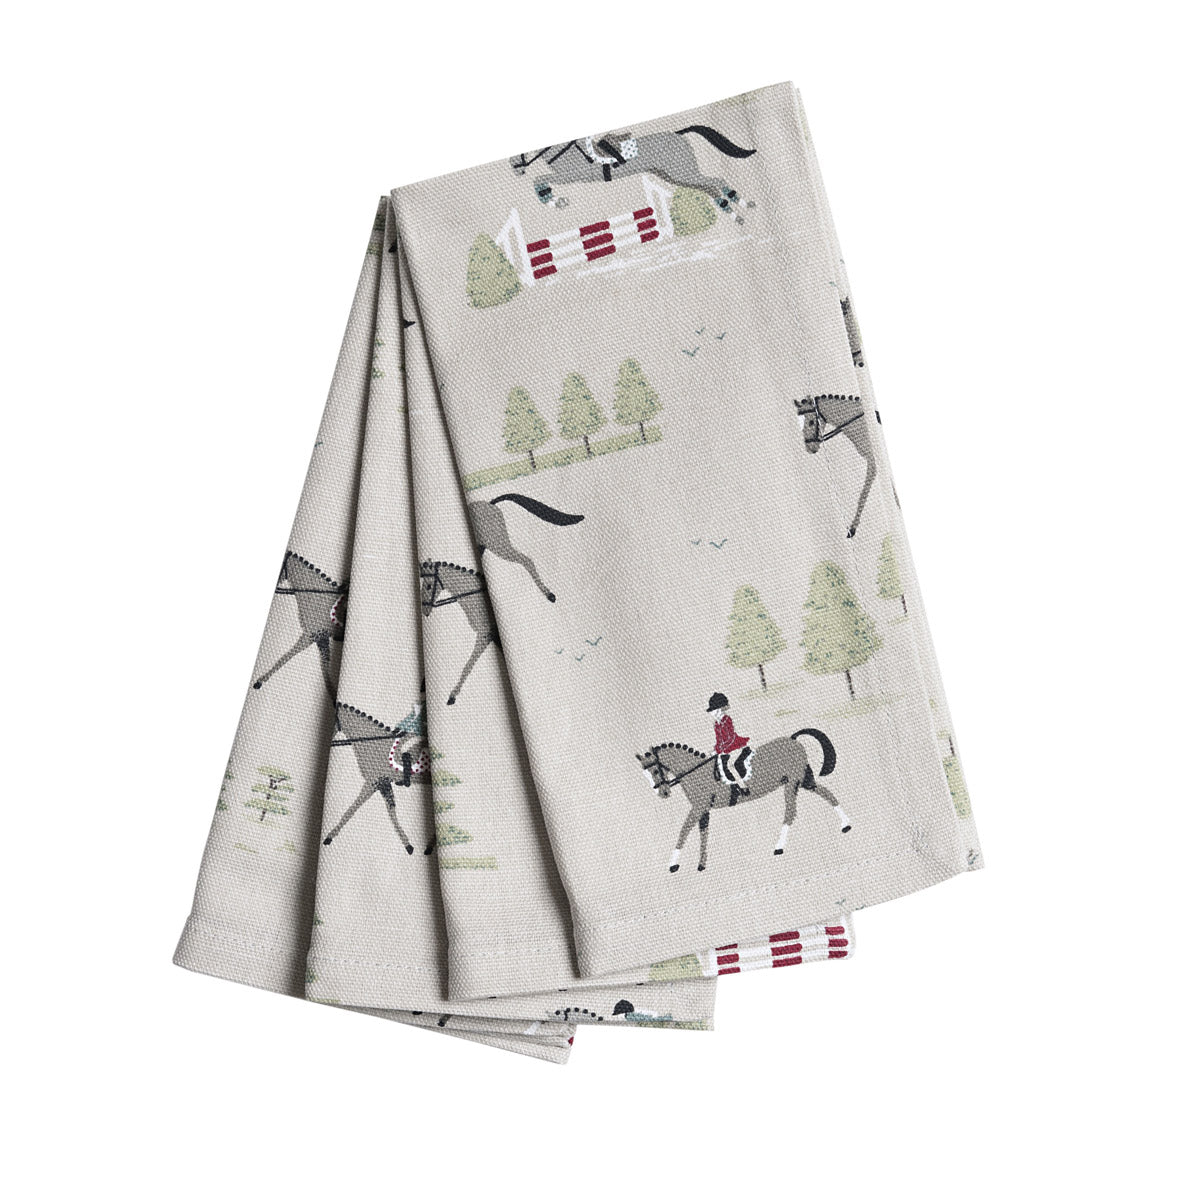 Horses Napkins - Set of 4